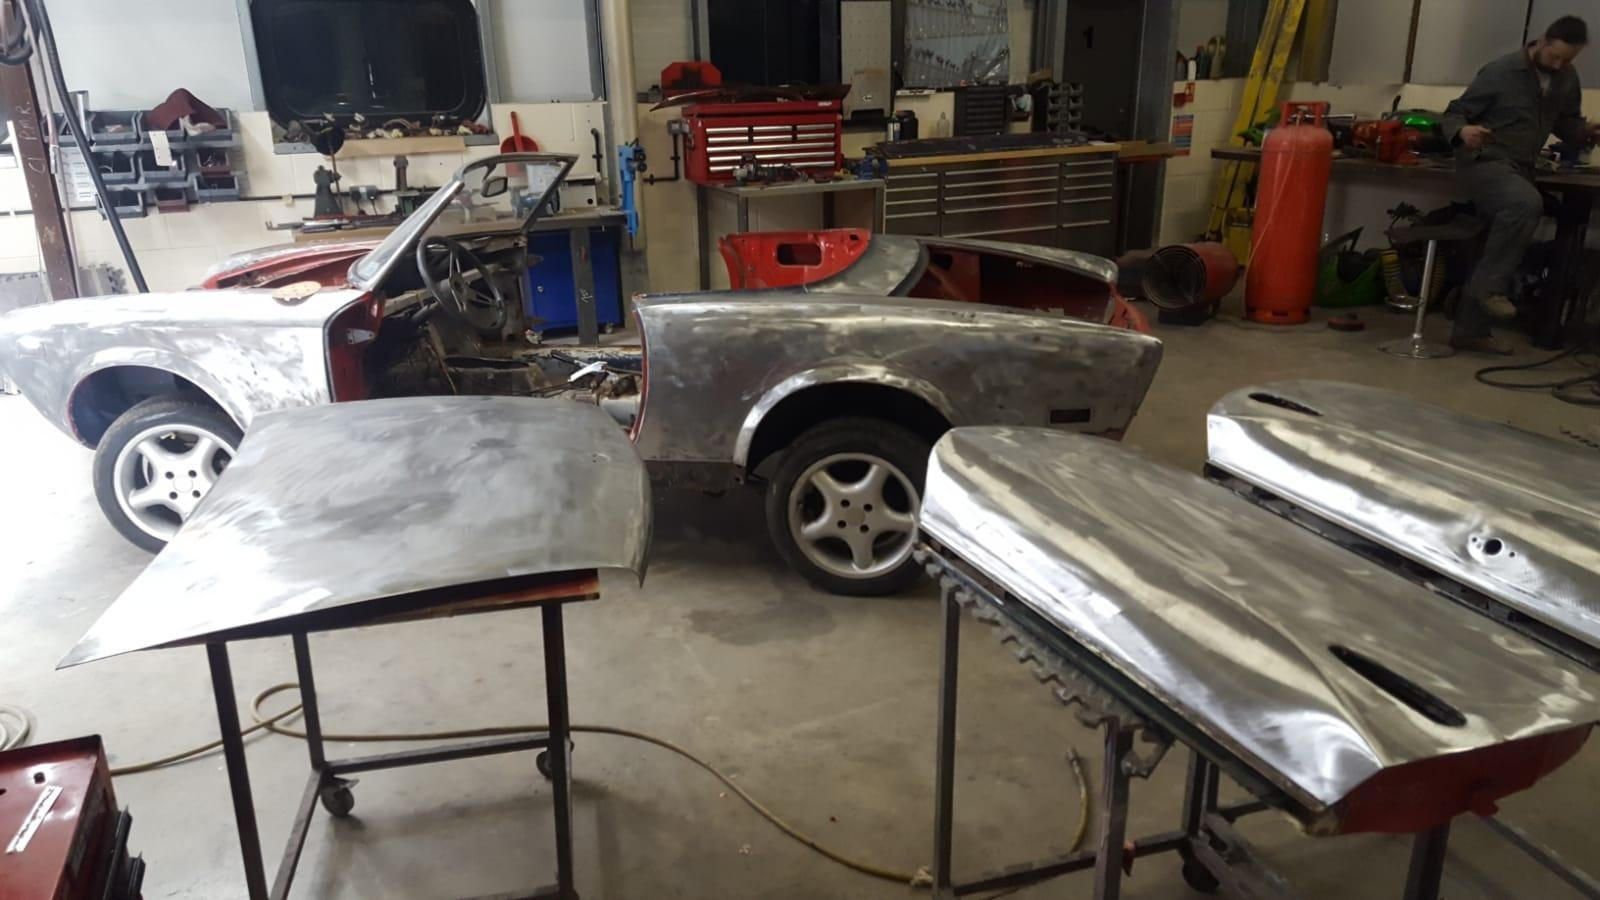 1980 fiat spider project For Sale (picture 2 of 5)